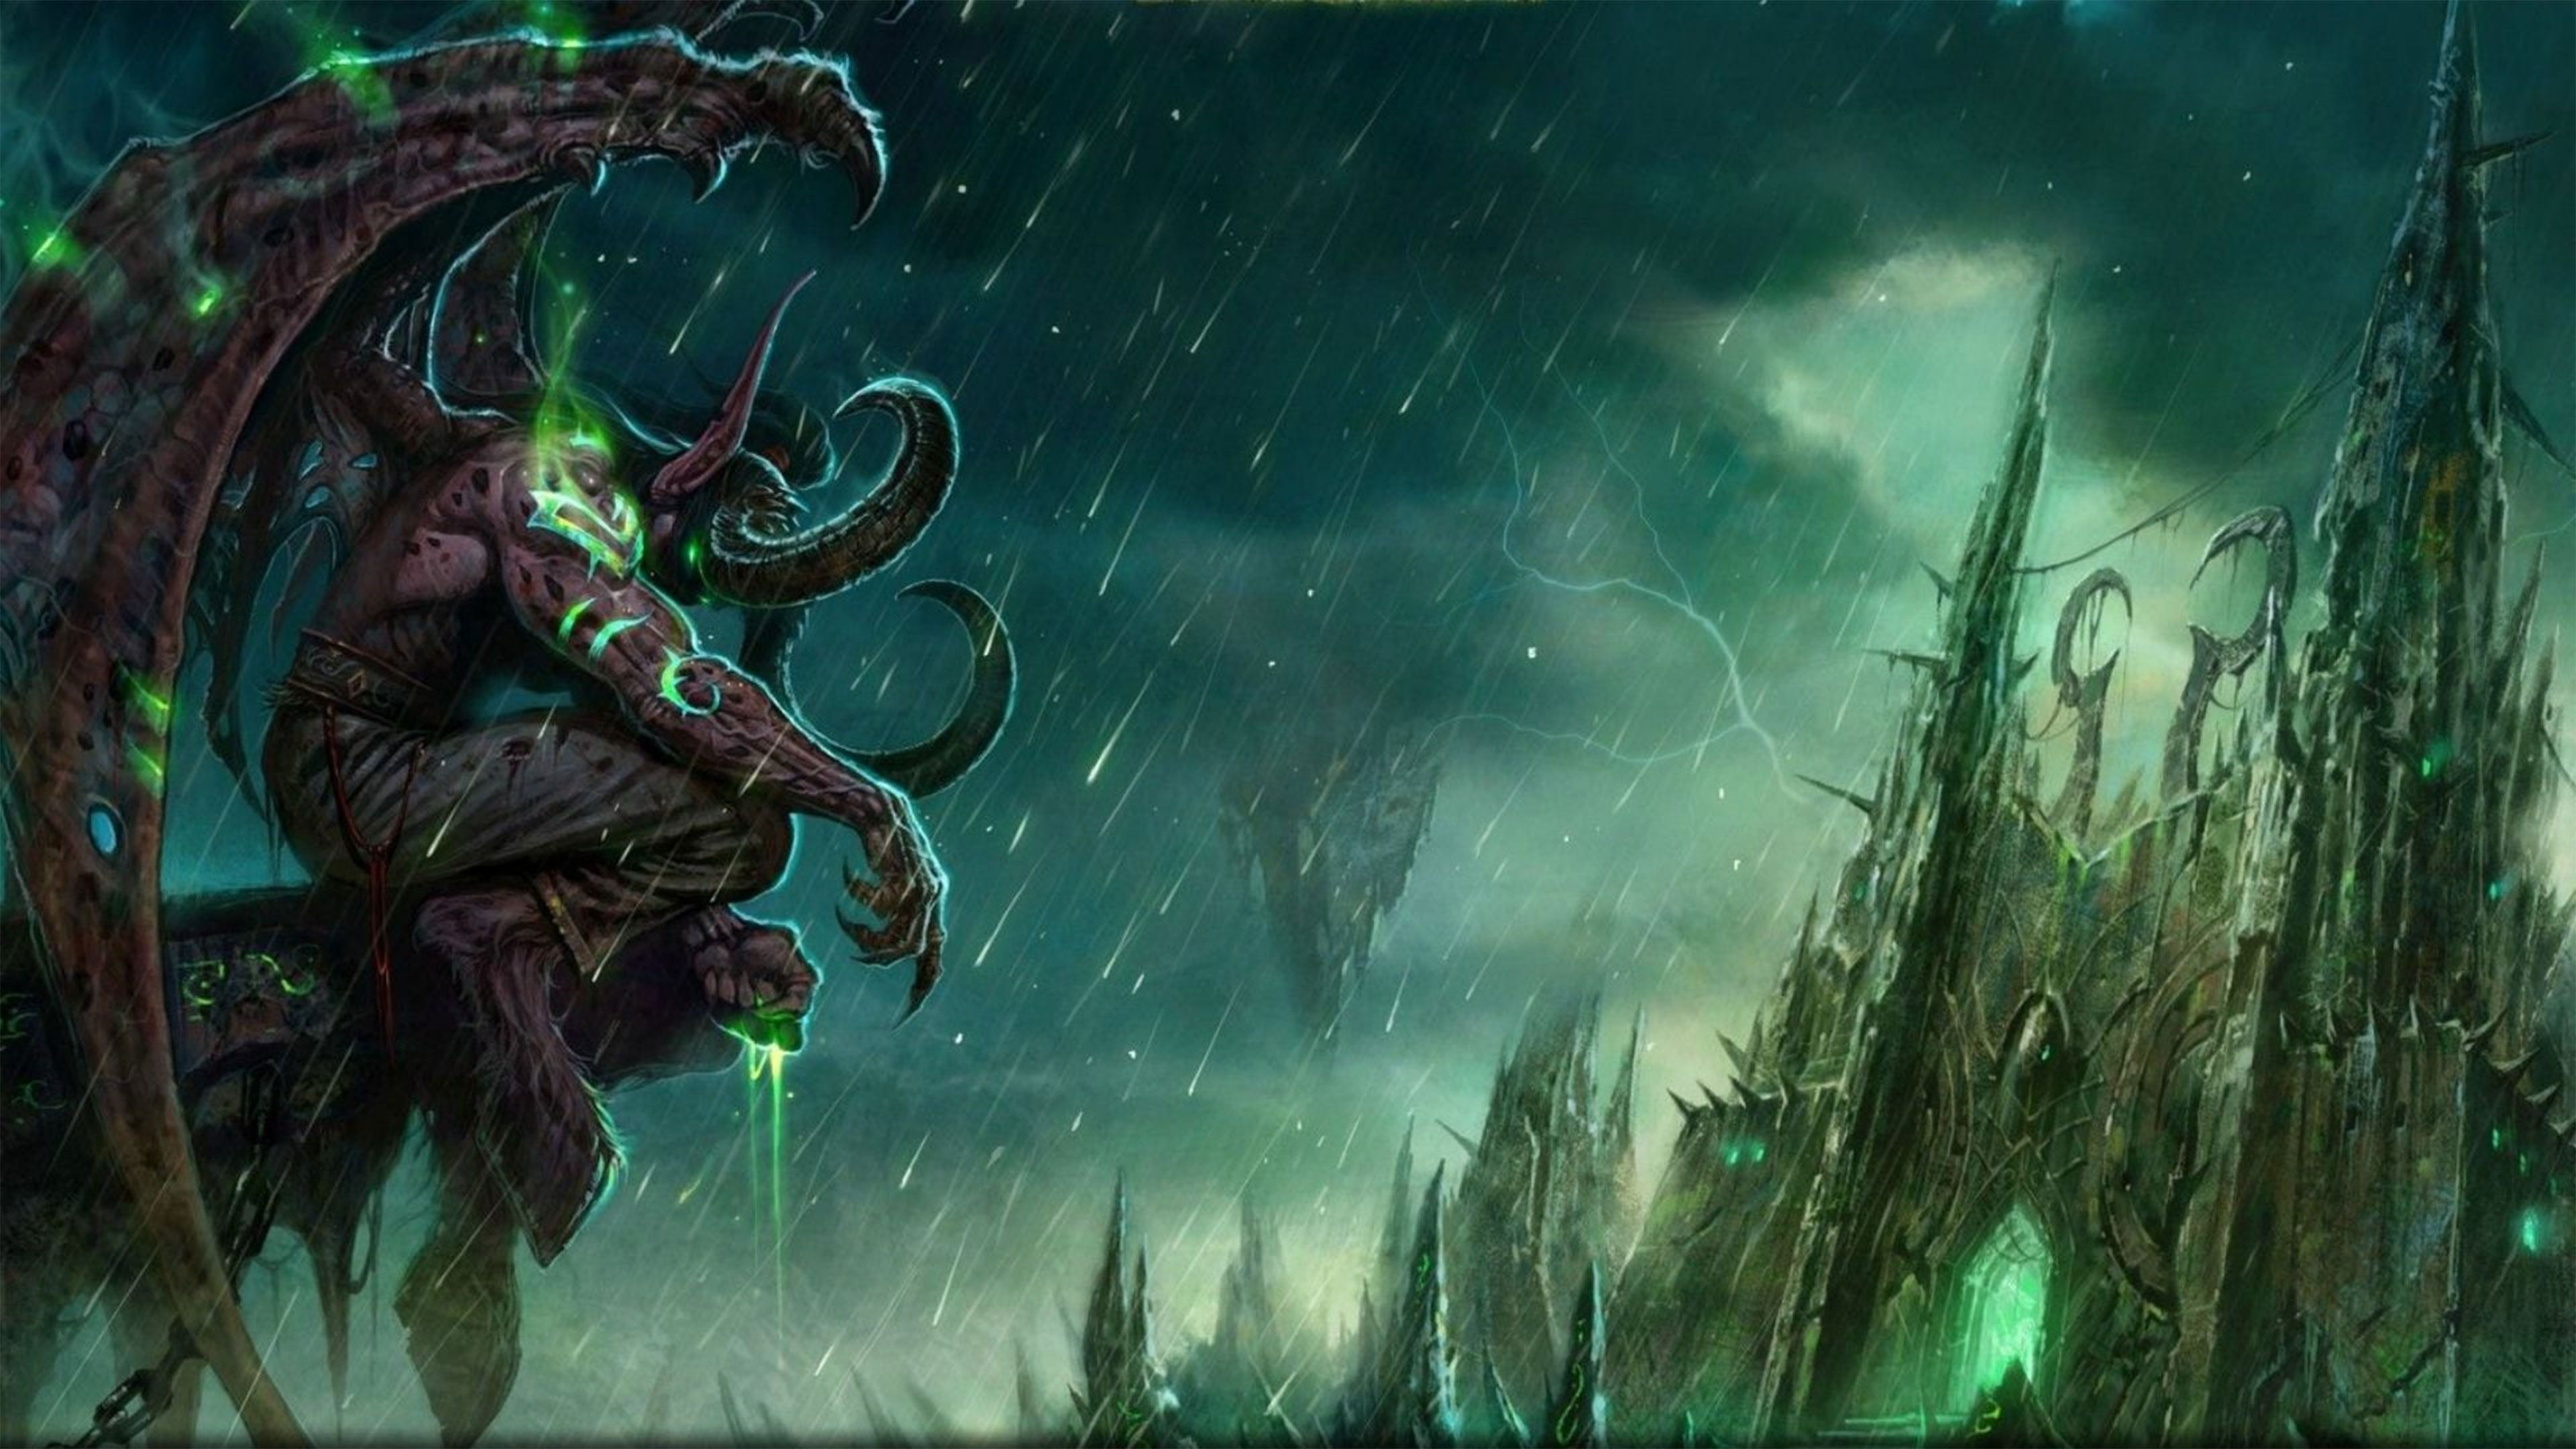 World Of Warcraft Legion Wallpapers In Ultra Hd 4k World Of Warcraft Wallpaper World Of Warcraft Legion World Of Warcraft Game